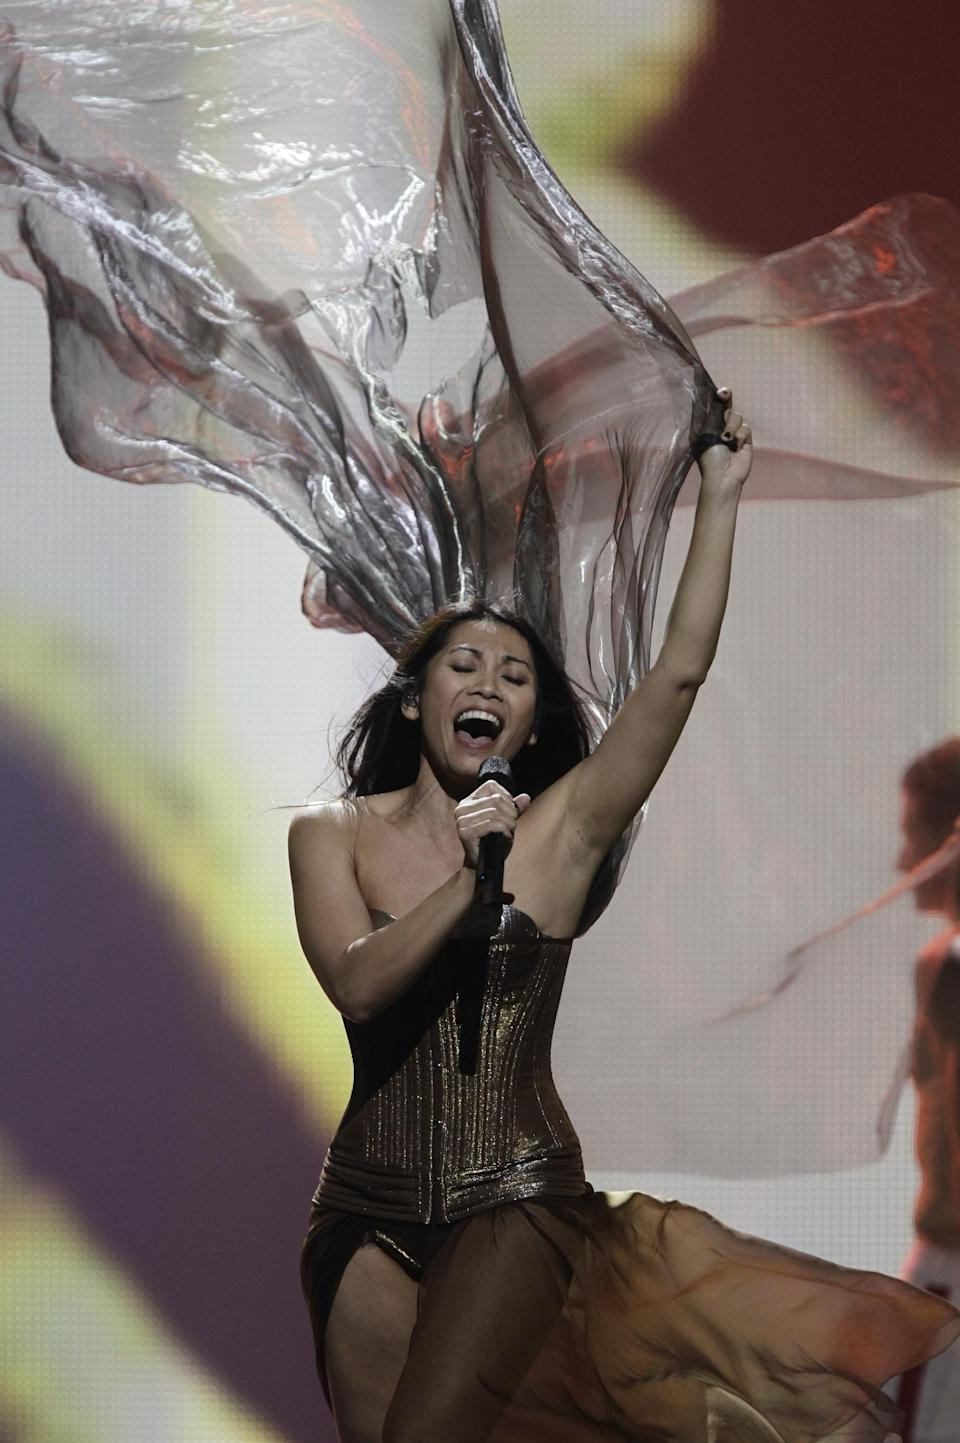 France Anggun perform during rehearsal for the final show of the 2012 Eurovision Song Contest at the Baku Crystal Hall in Baku, Friday, May 25, 2012. The finals of the 2012 Eurovision Song Contest will be held at the stadium on May 26, 2012. (AP Photo/Sergey Ponomarev)